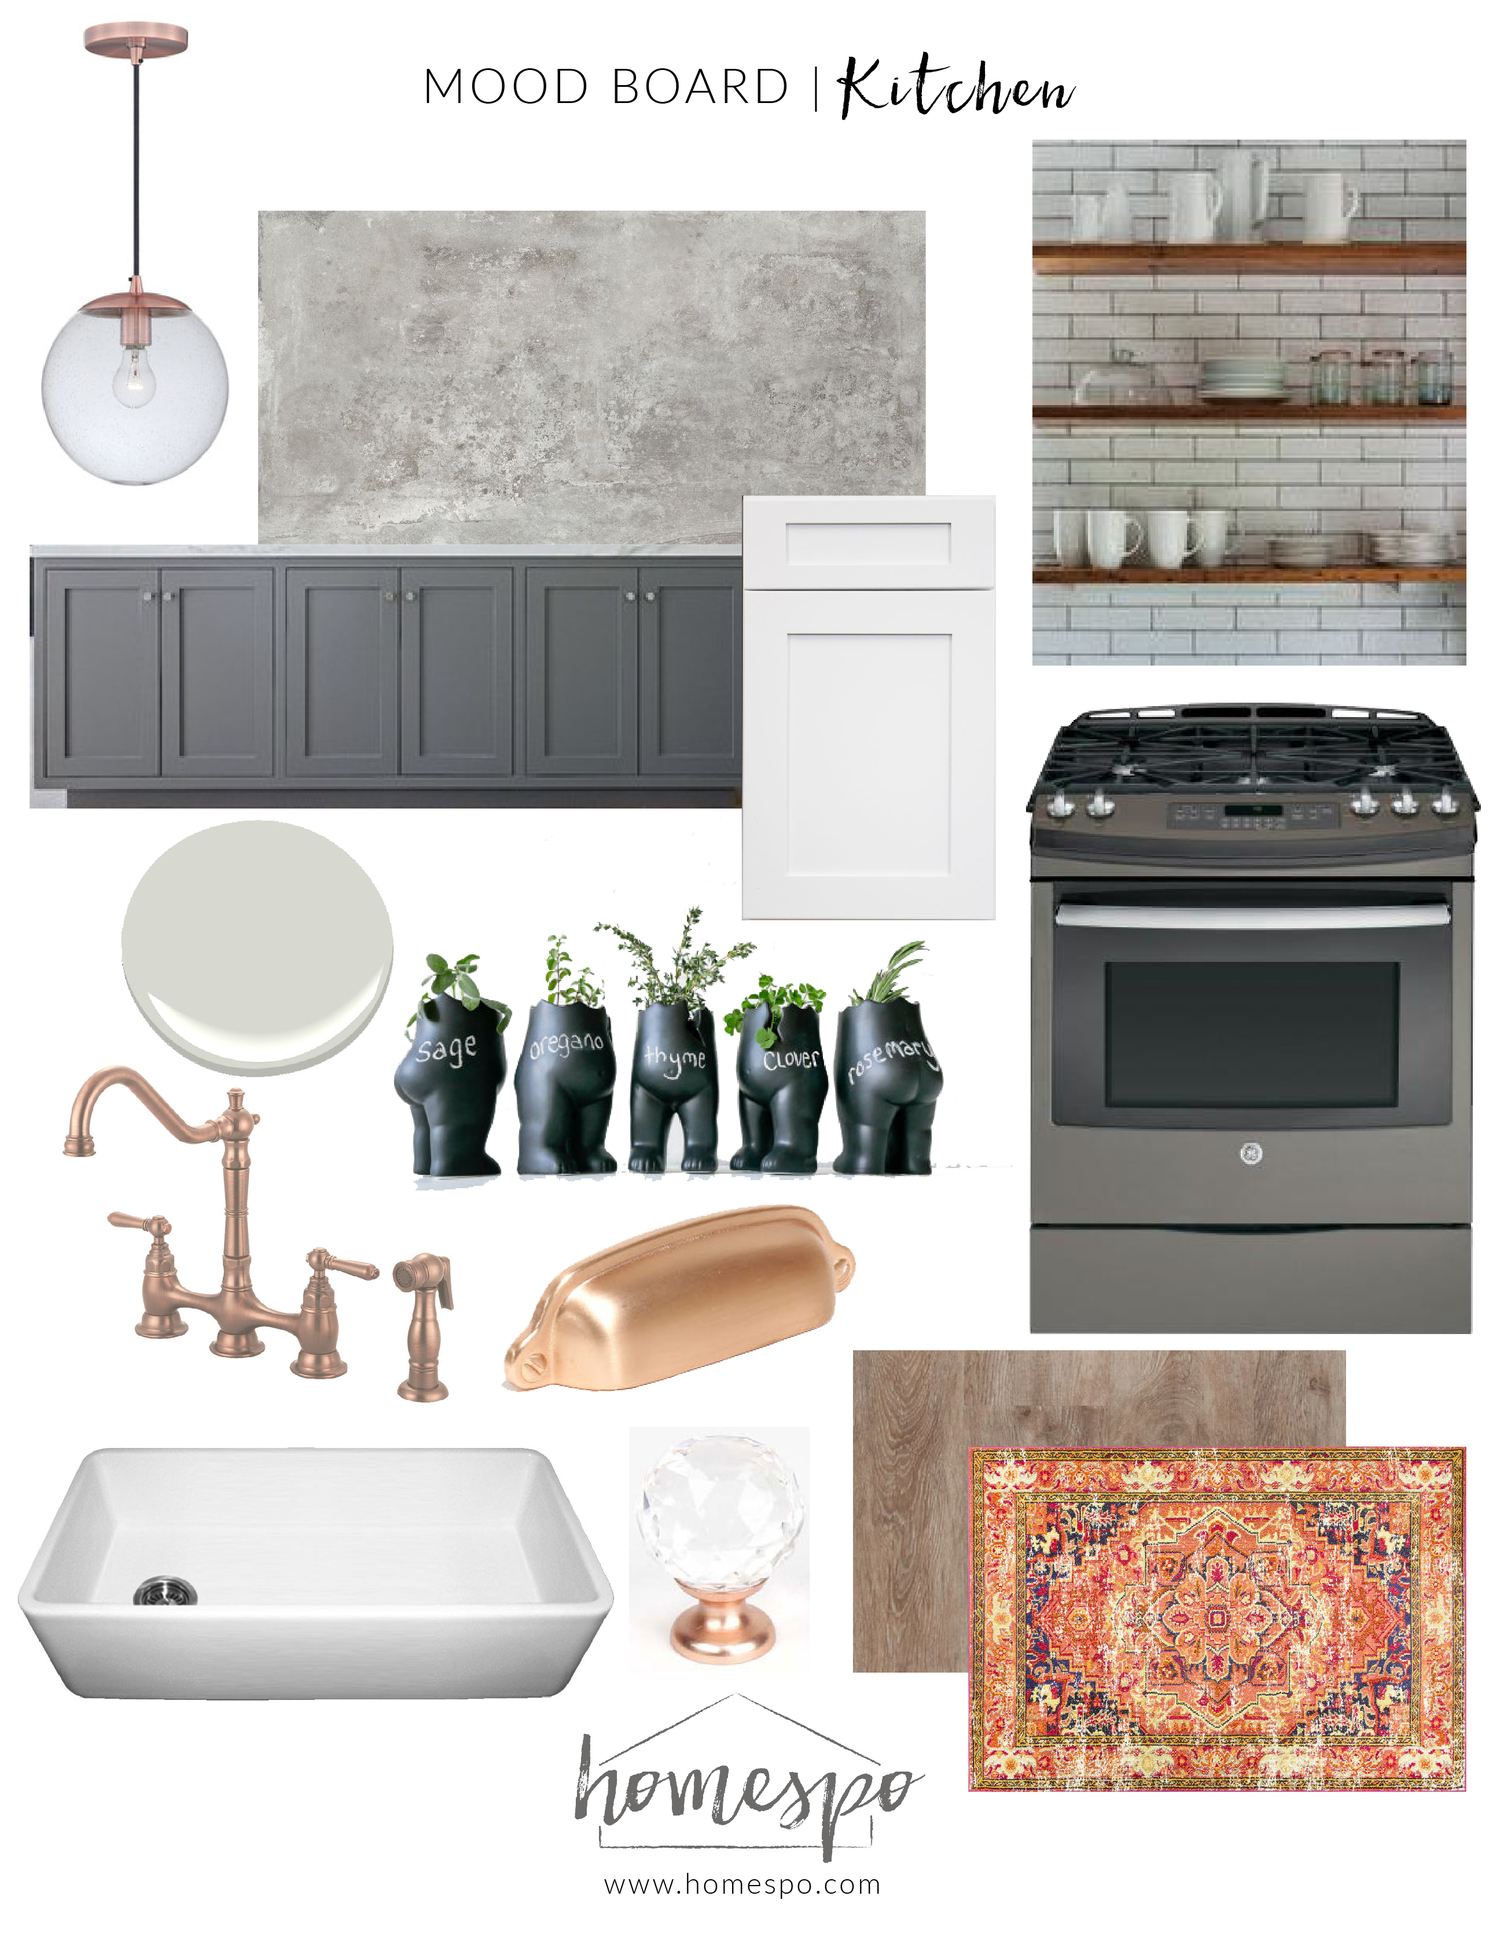 White Gray And Copper Kitchen Mood Board S T U D I O G A S P O